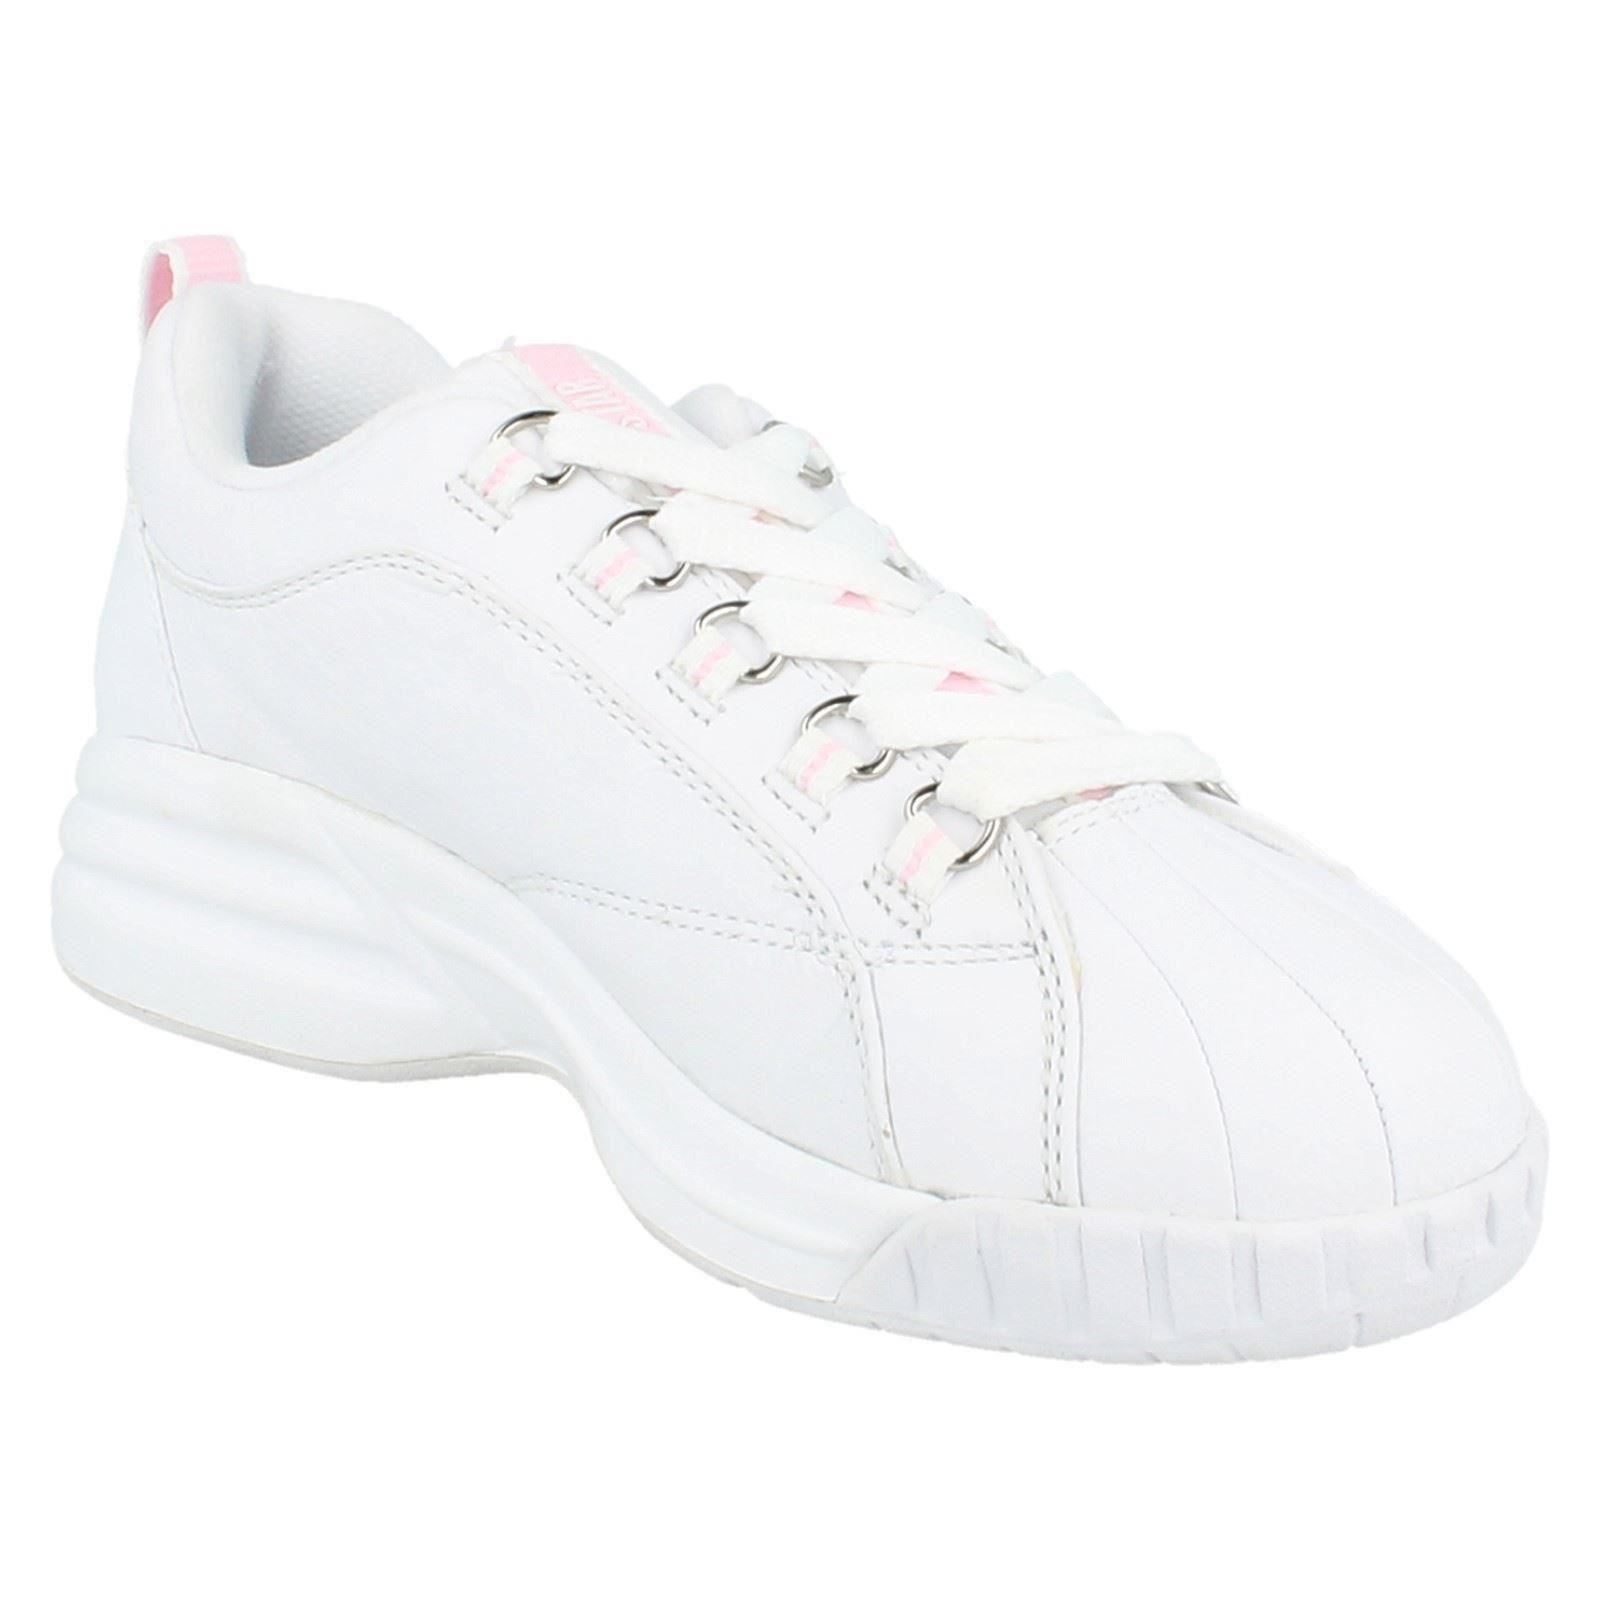 Girls Converse Trainers The Style - Cynch Le